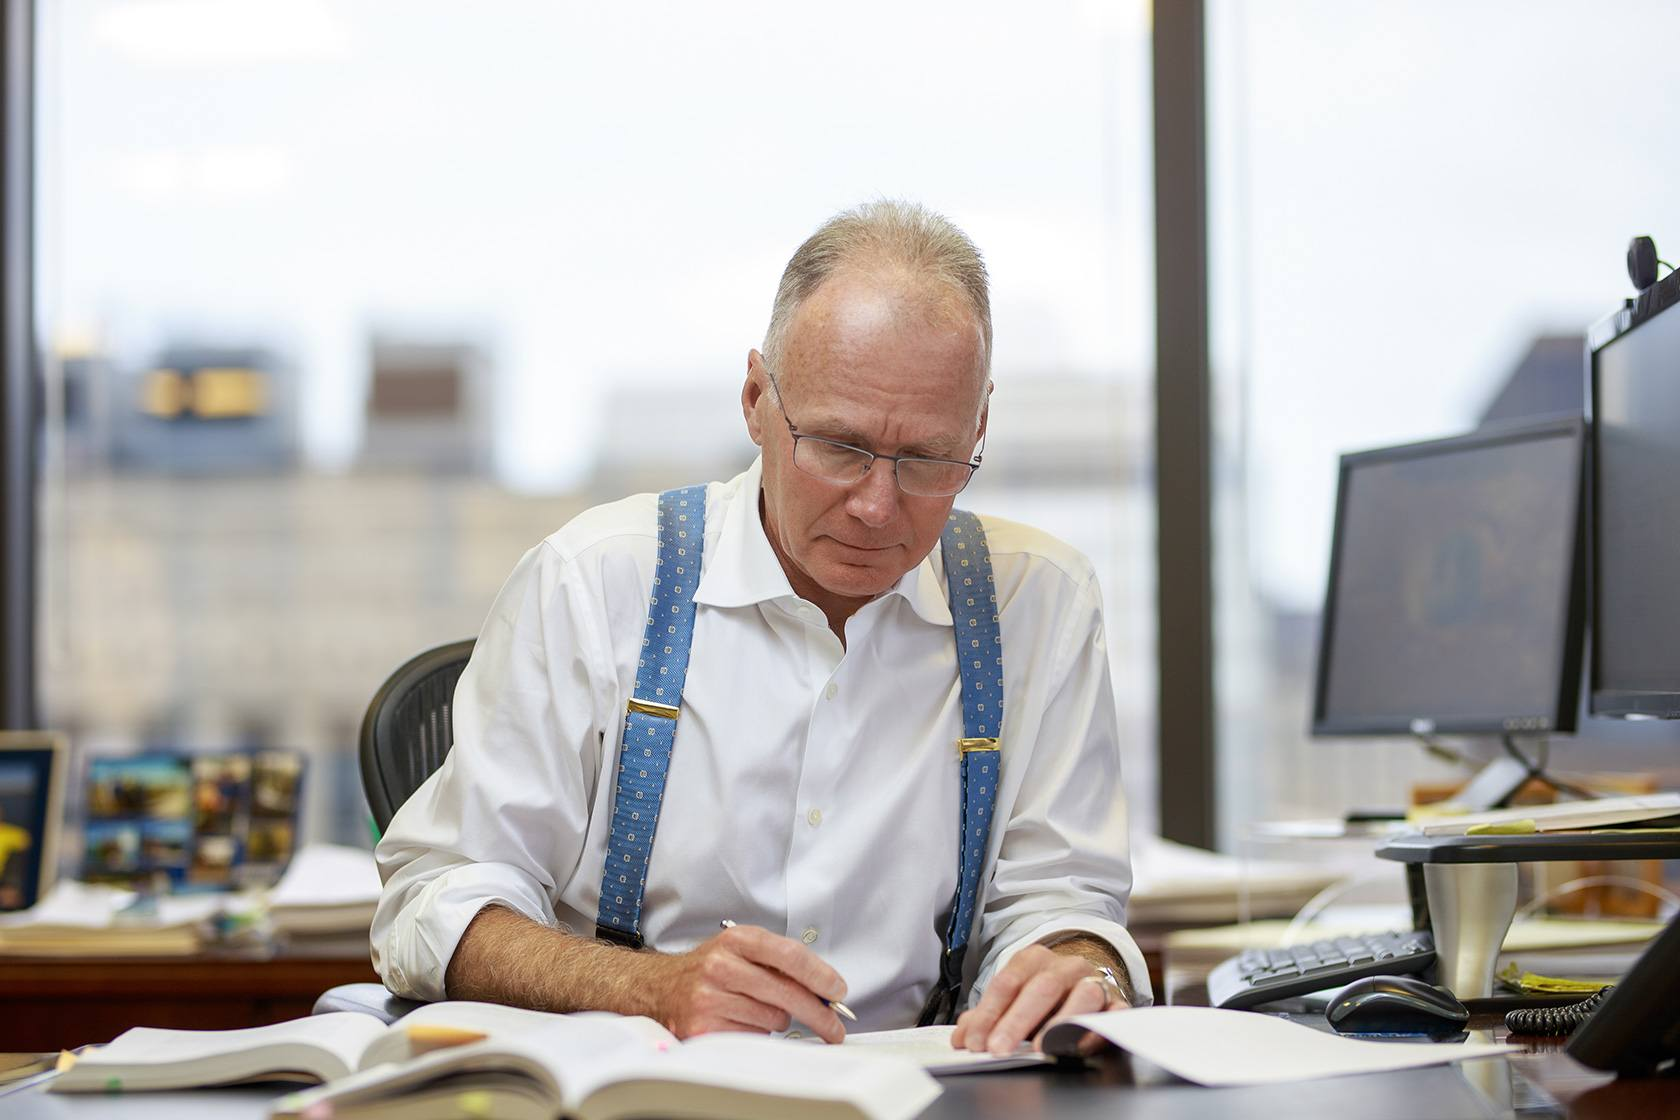 Peter King reviewing documents